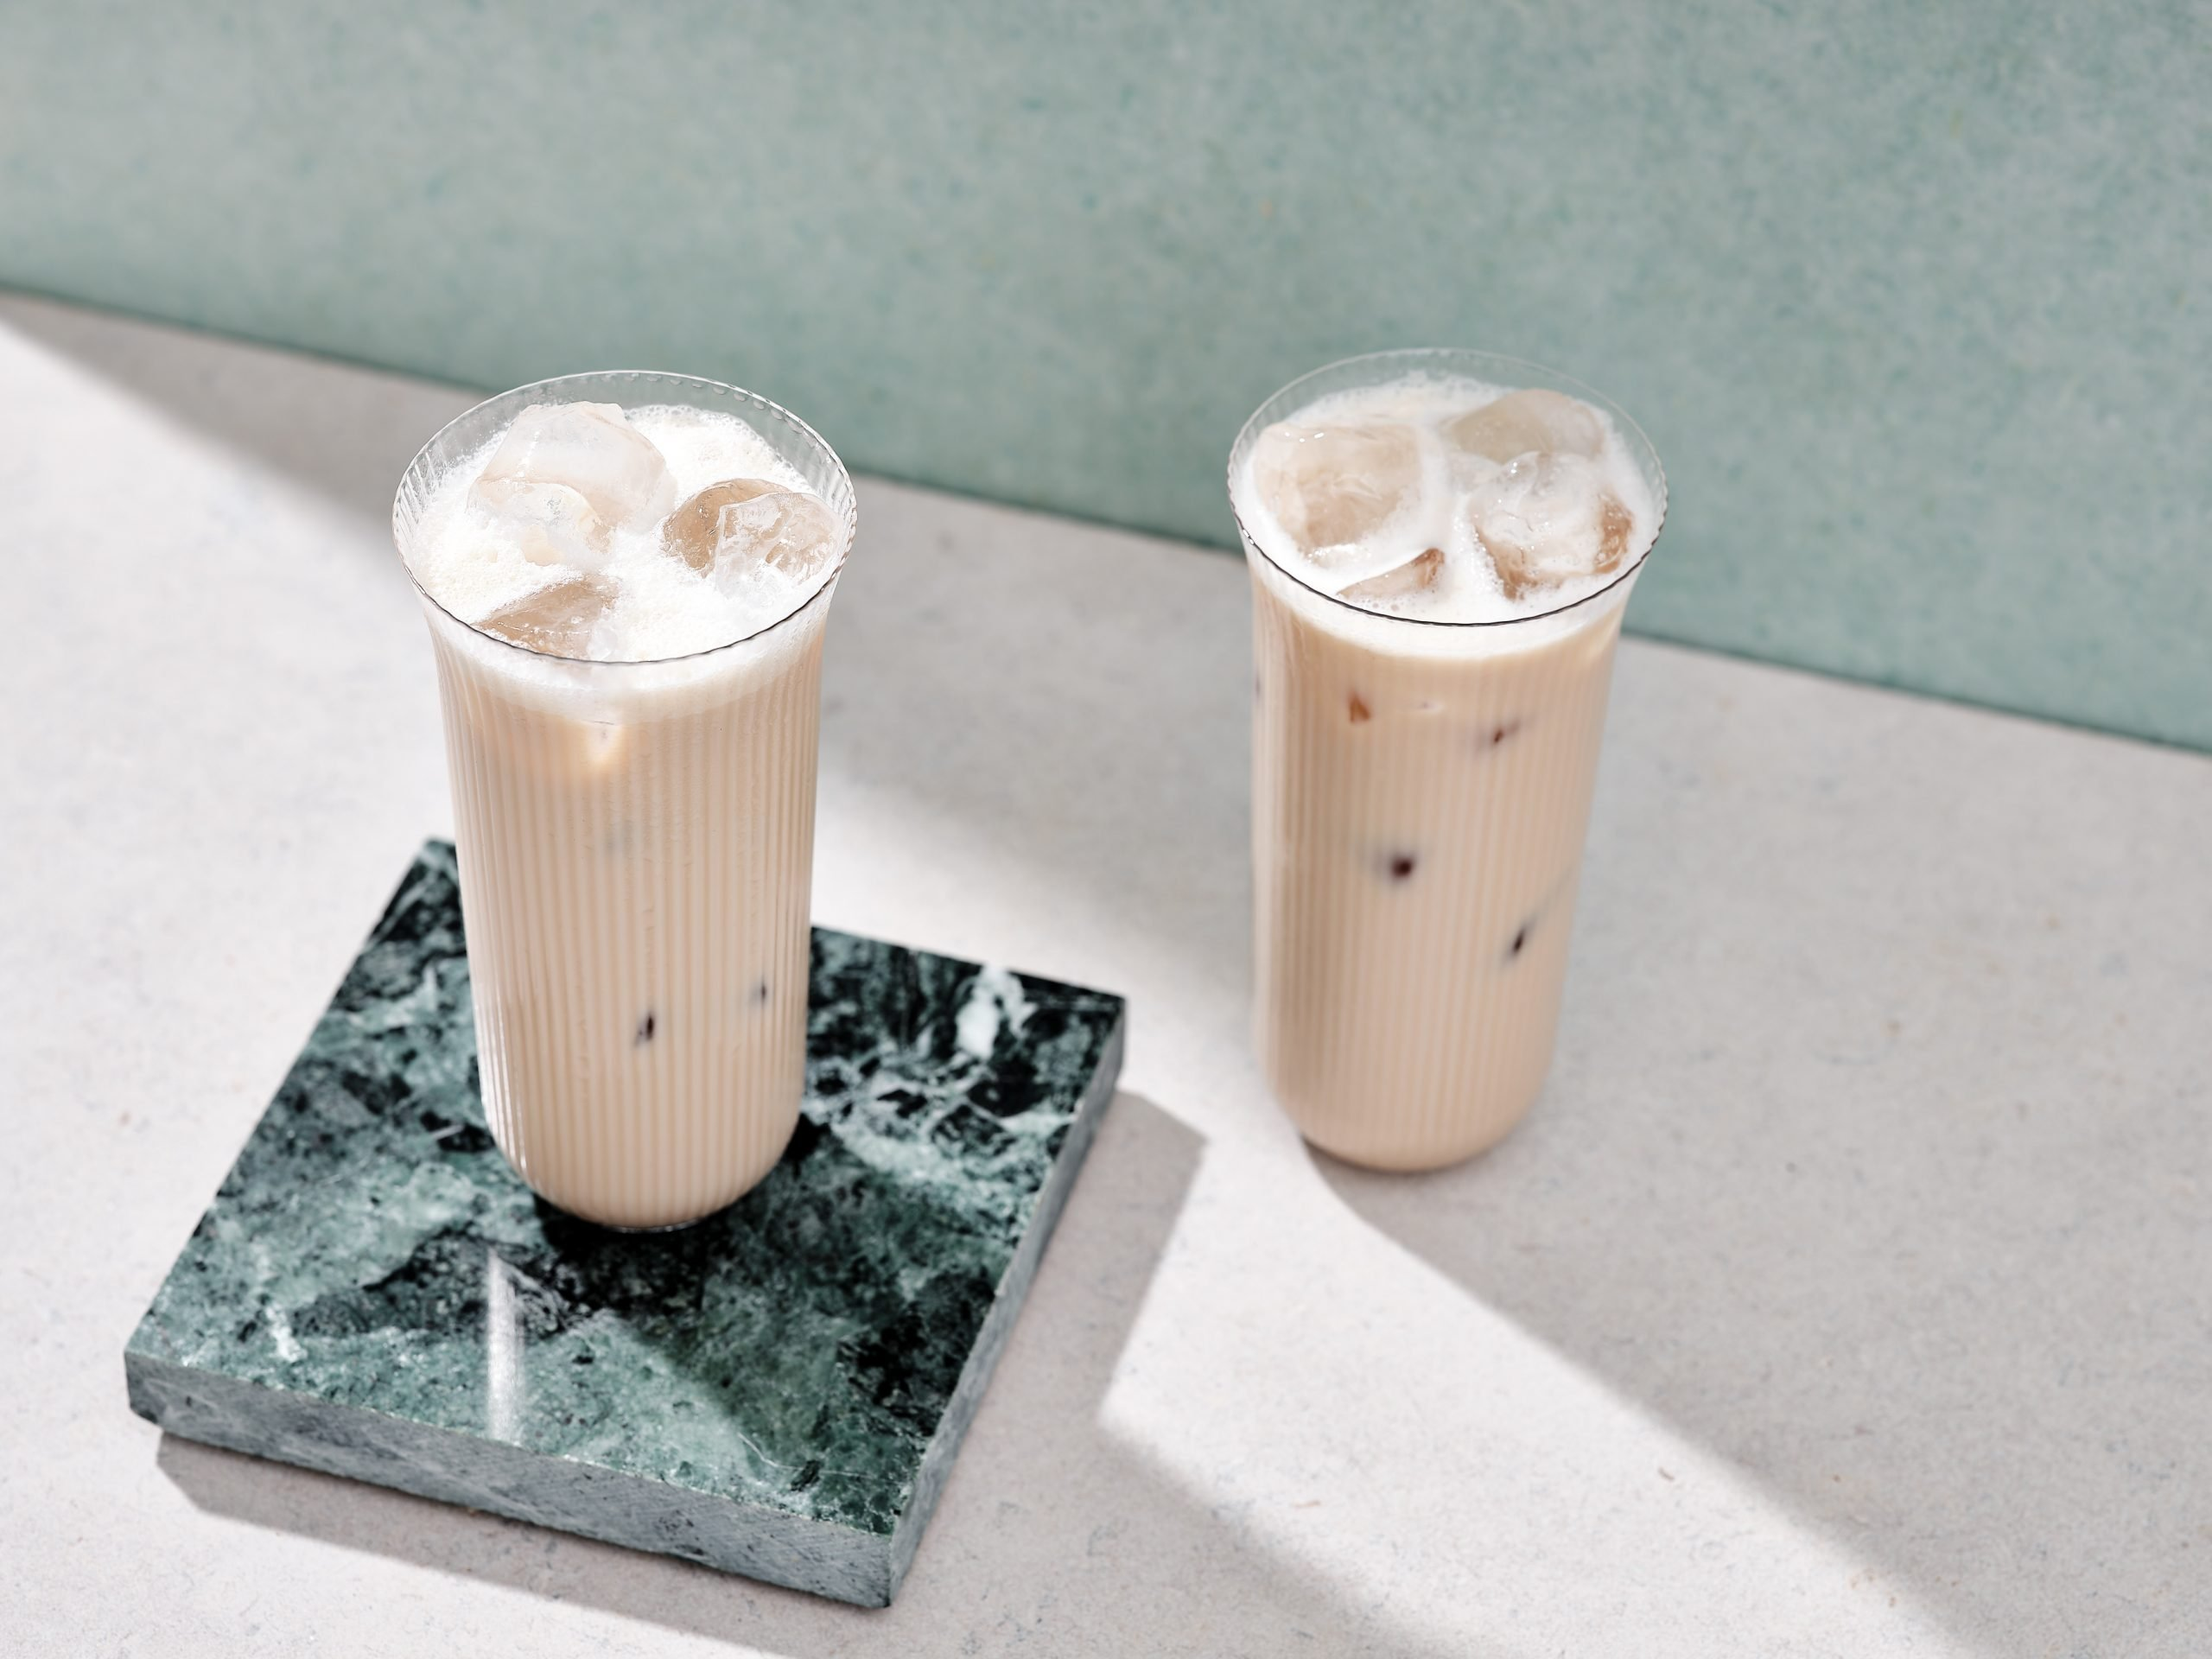 Bruynooghe Vietnamese Iced Coffee